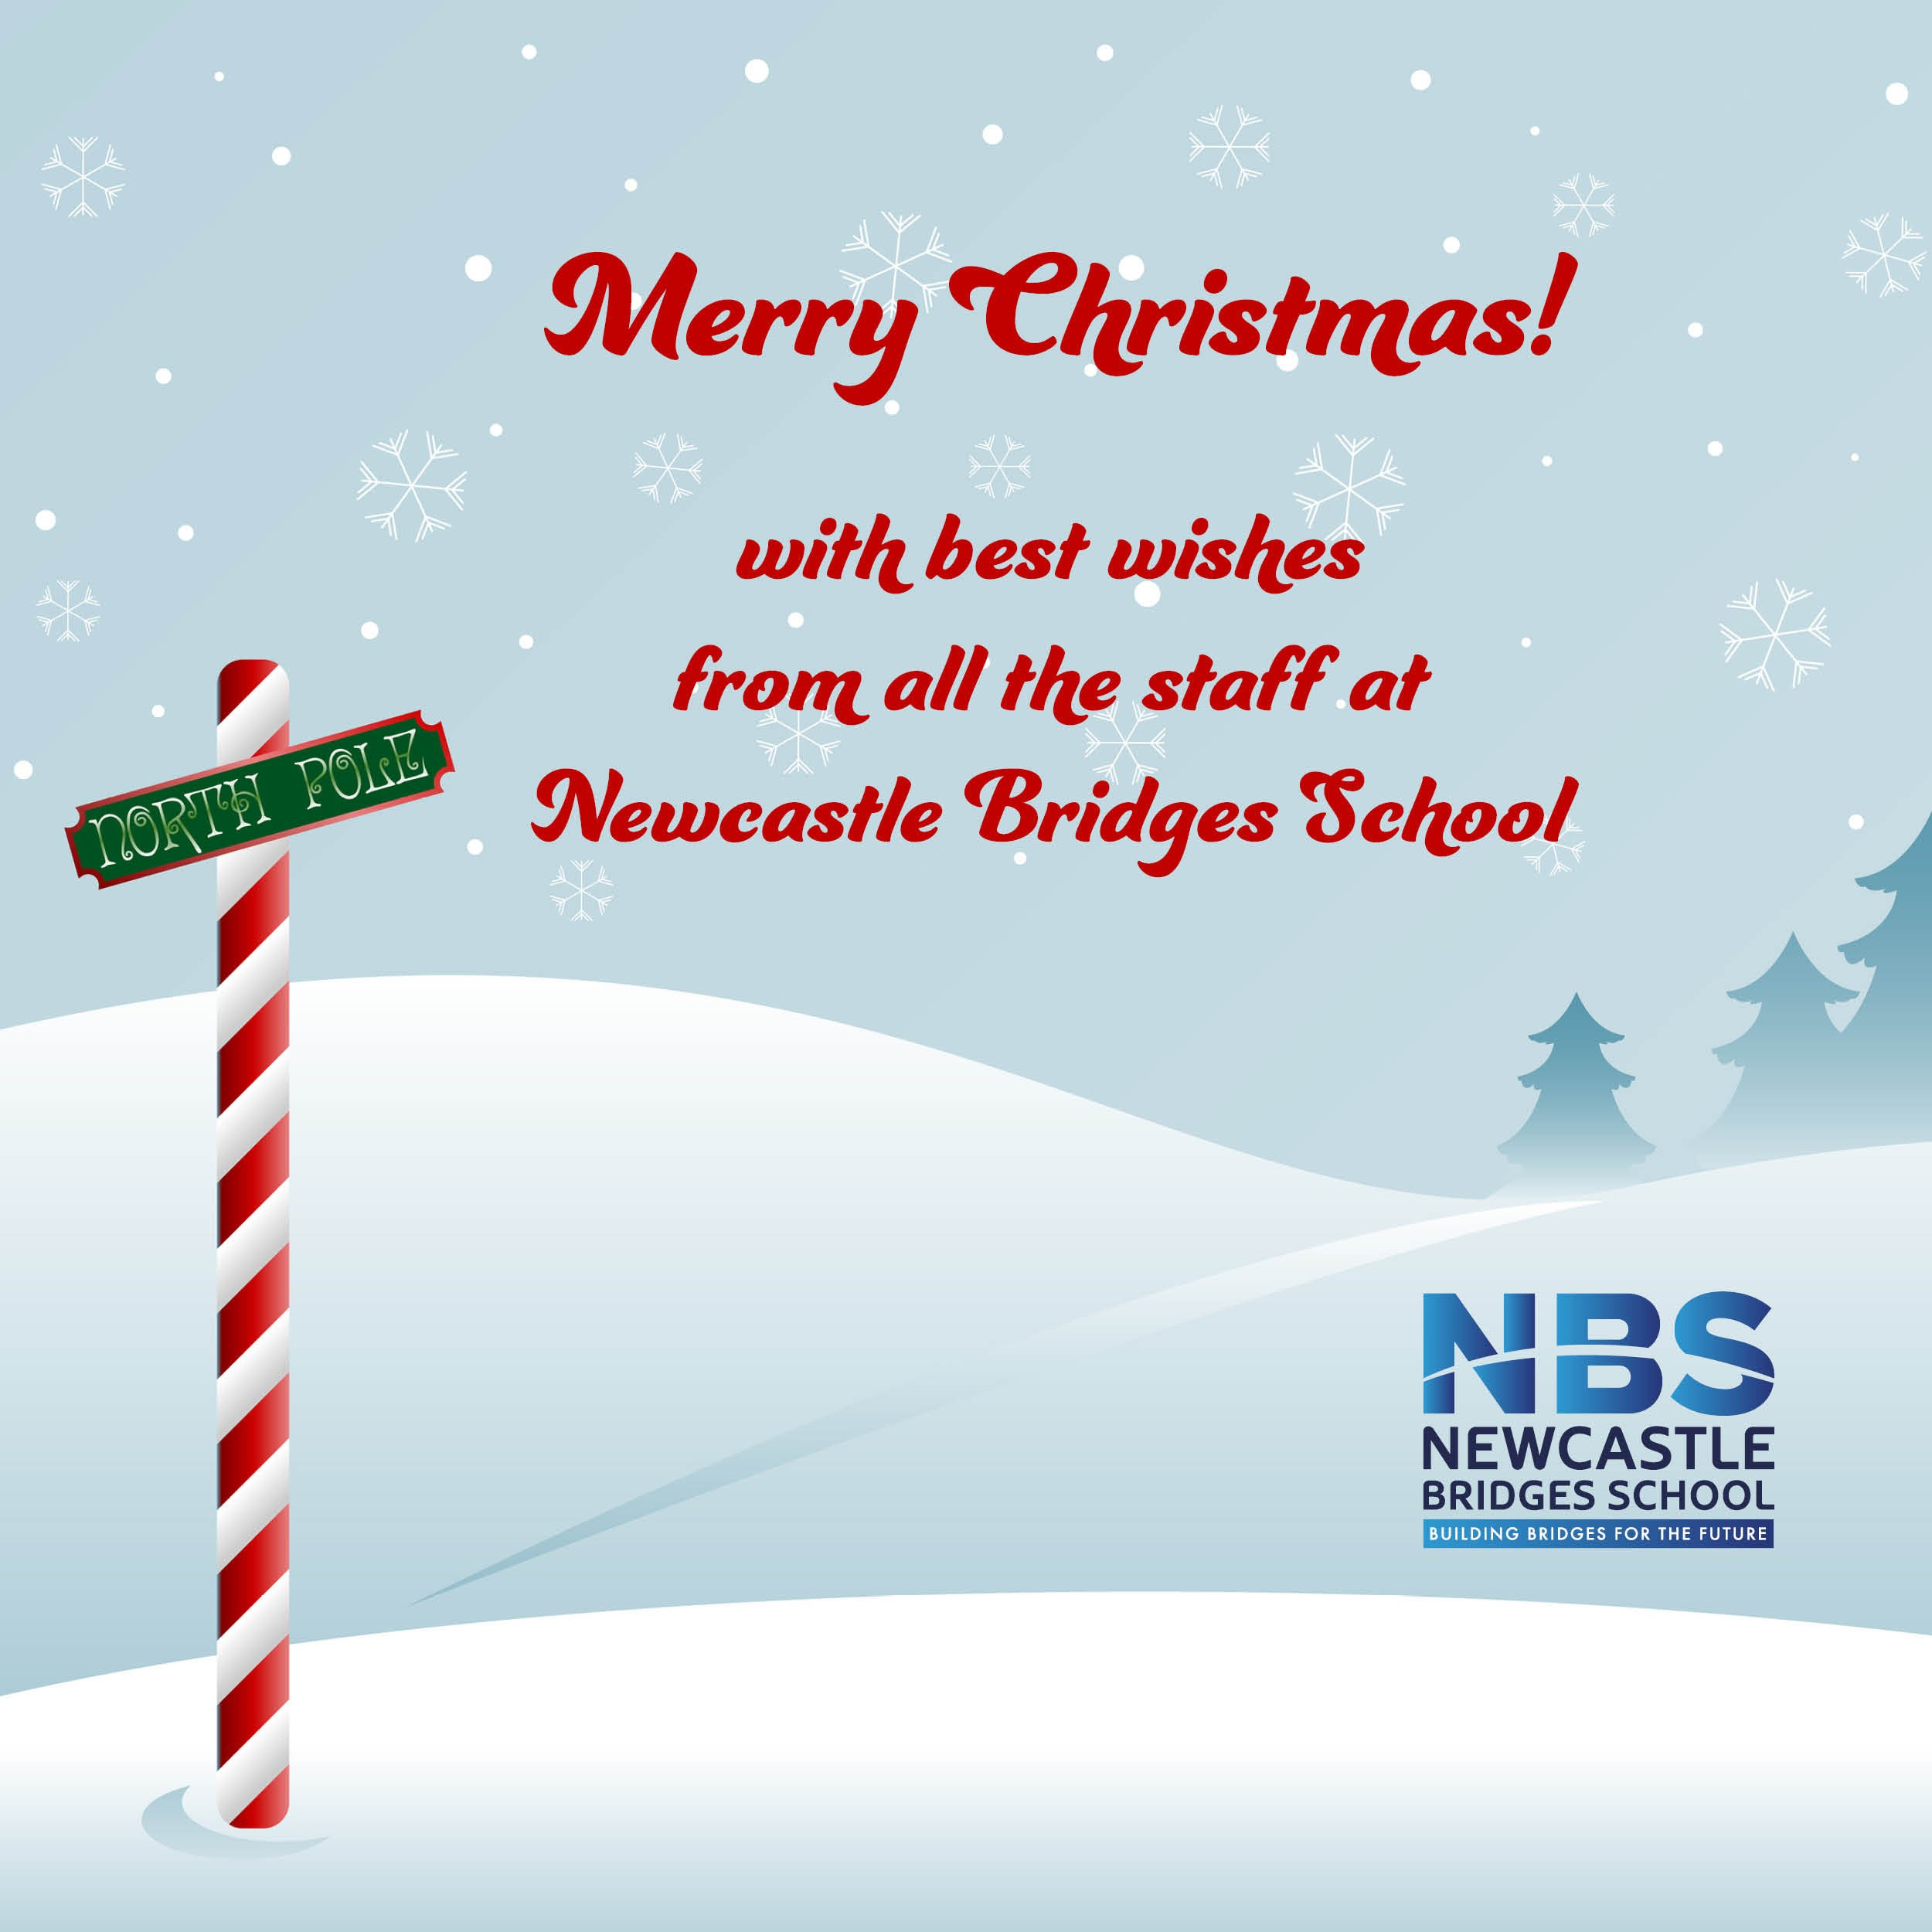 Merry Christmas from Newcastle Bridges School!